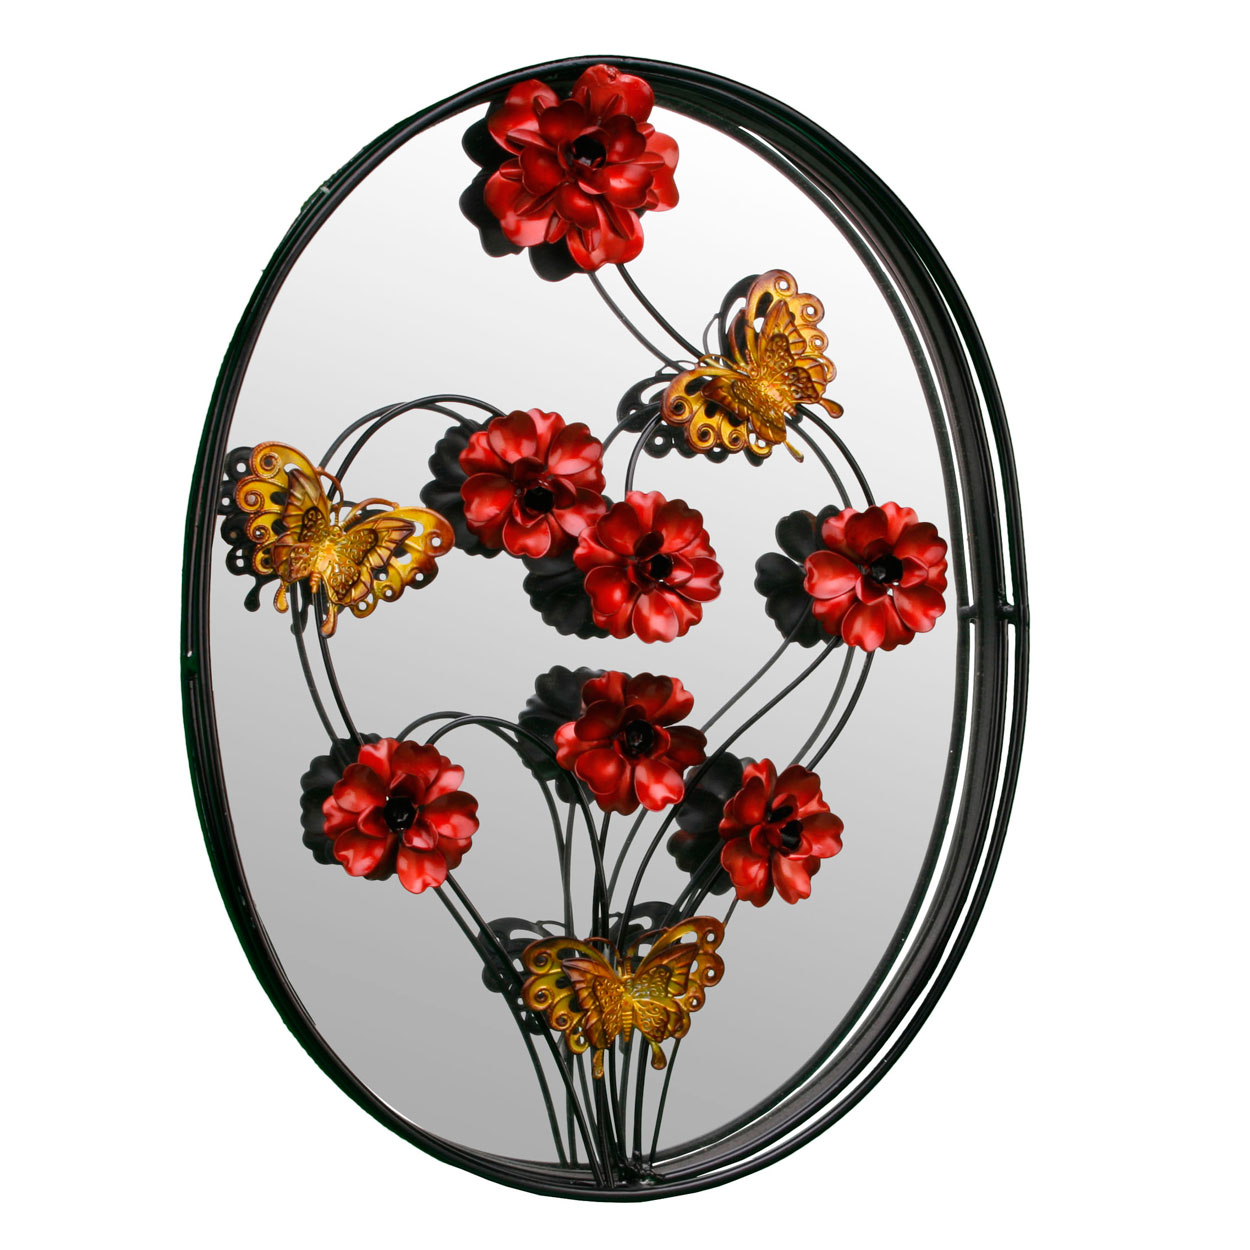 Framed Oval Metal Wall Art Mirror Red Flowers Butterfly Hanging Decoration